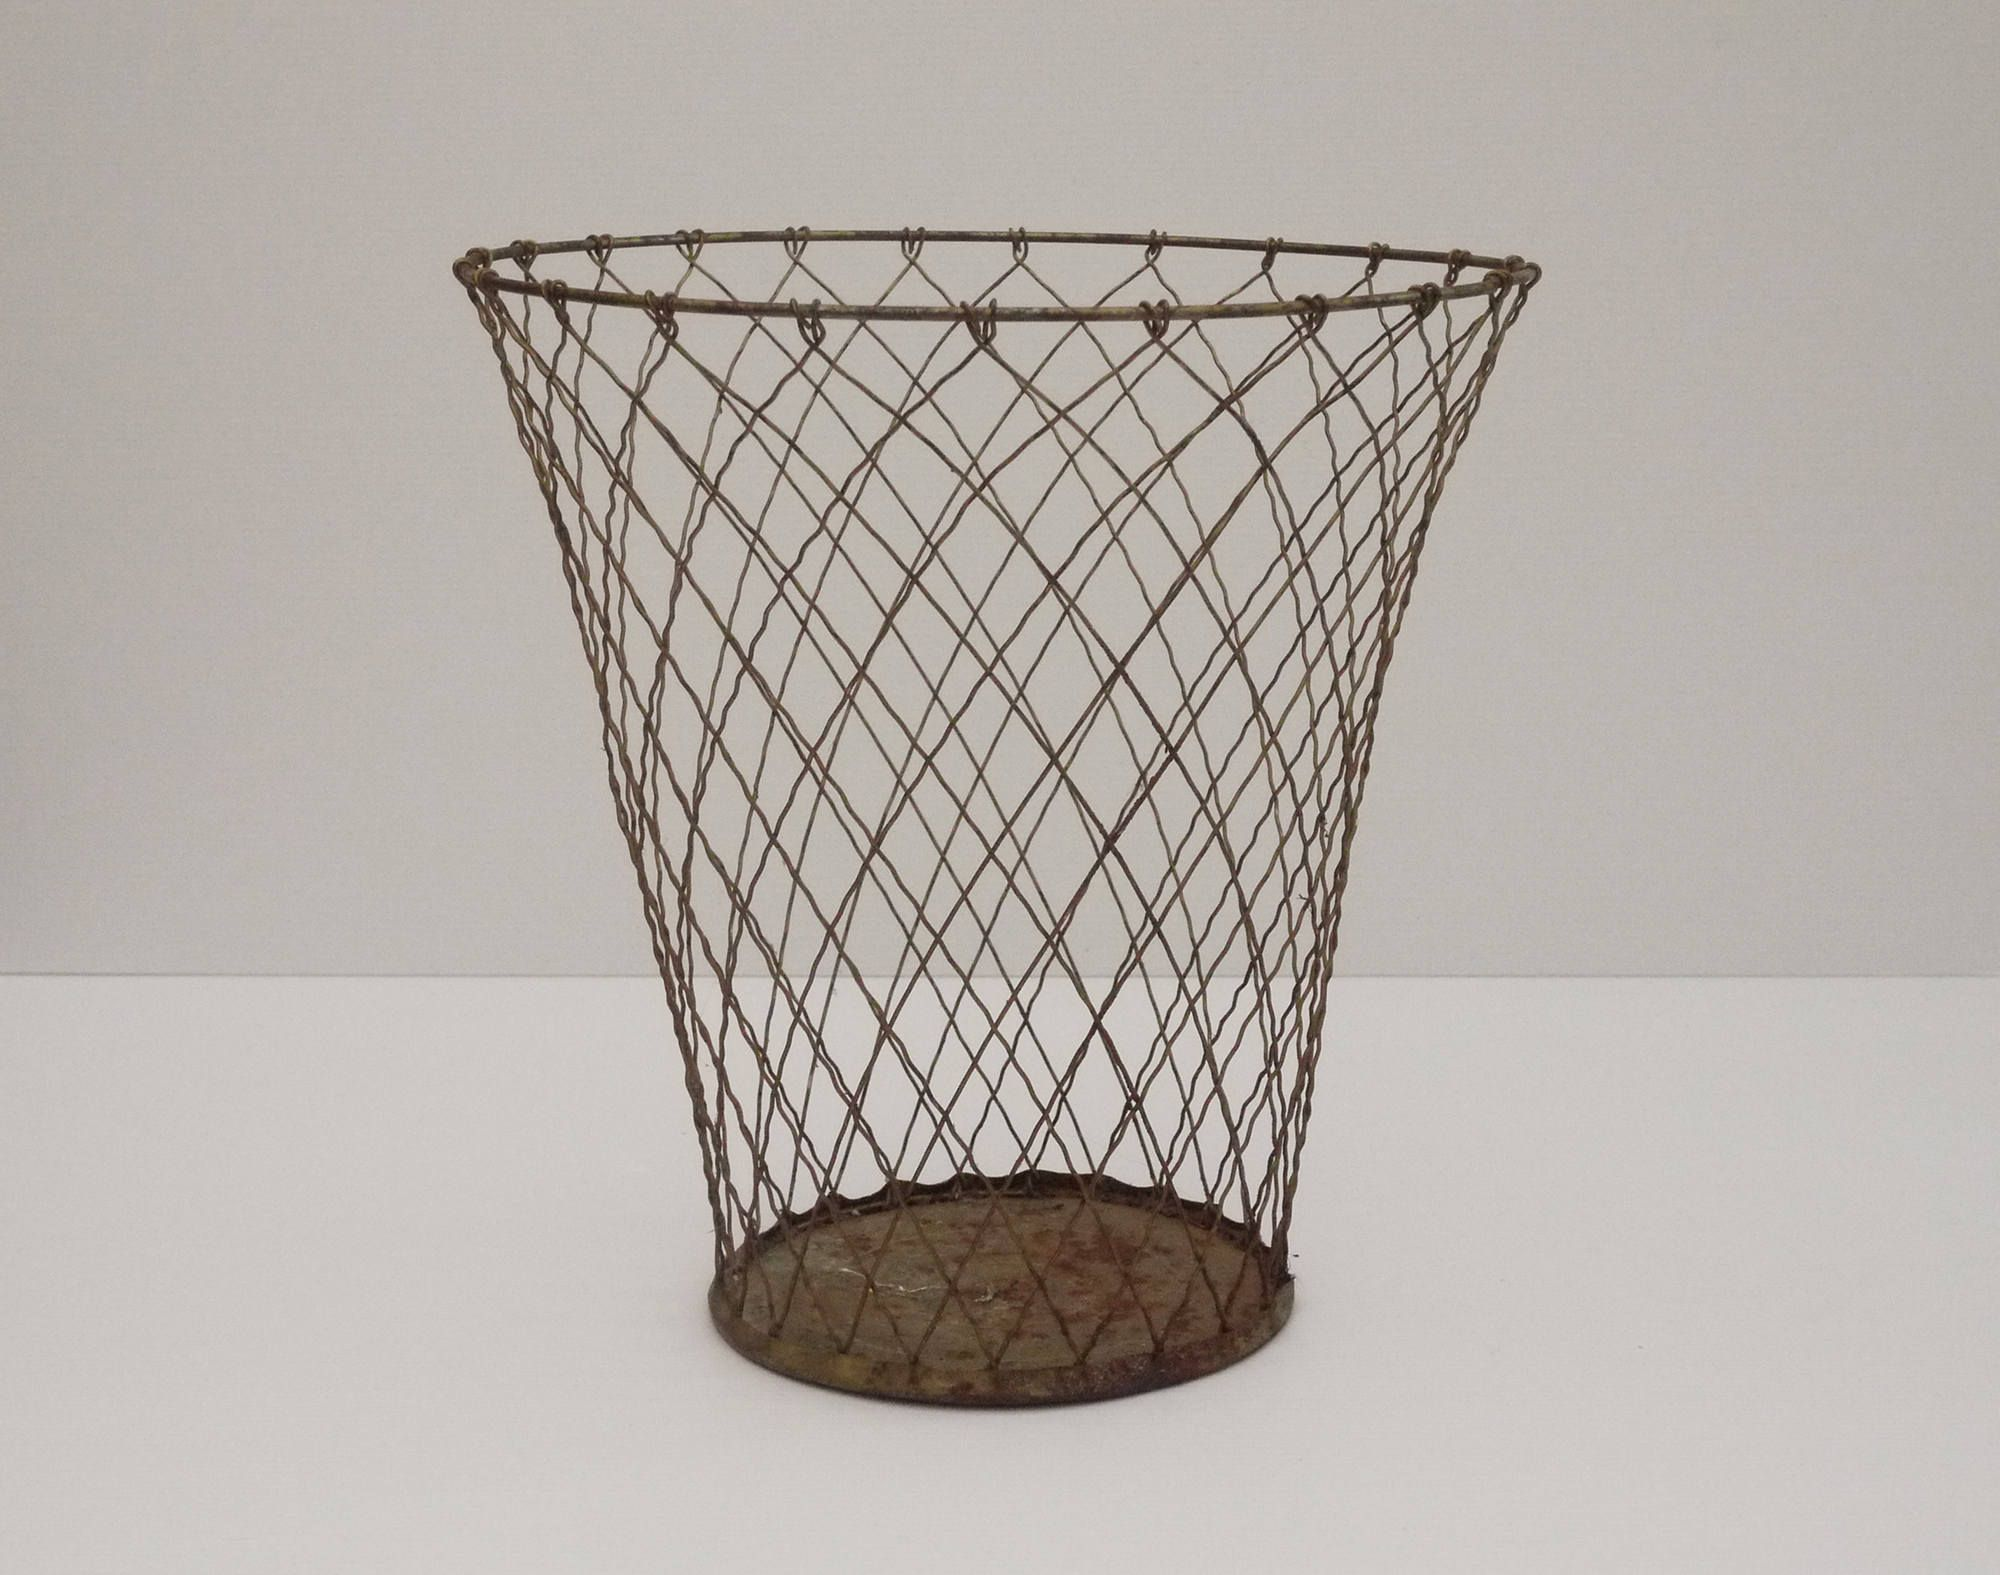 Antique French Wire Mesh Waste Basket, Industrial Metal Trash Can